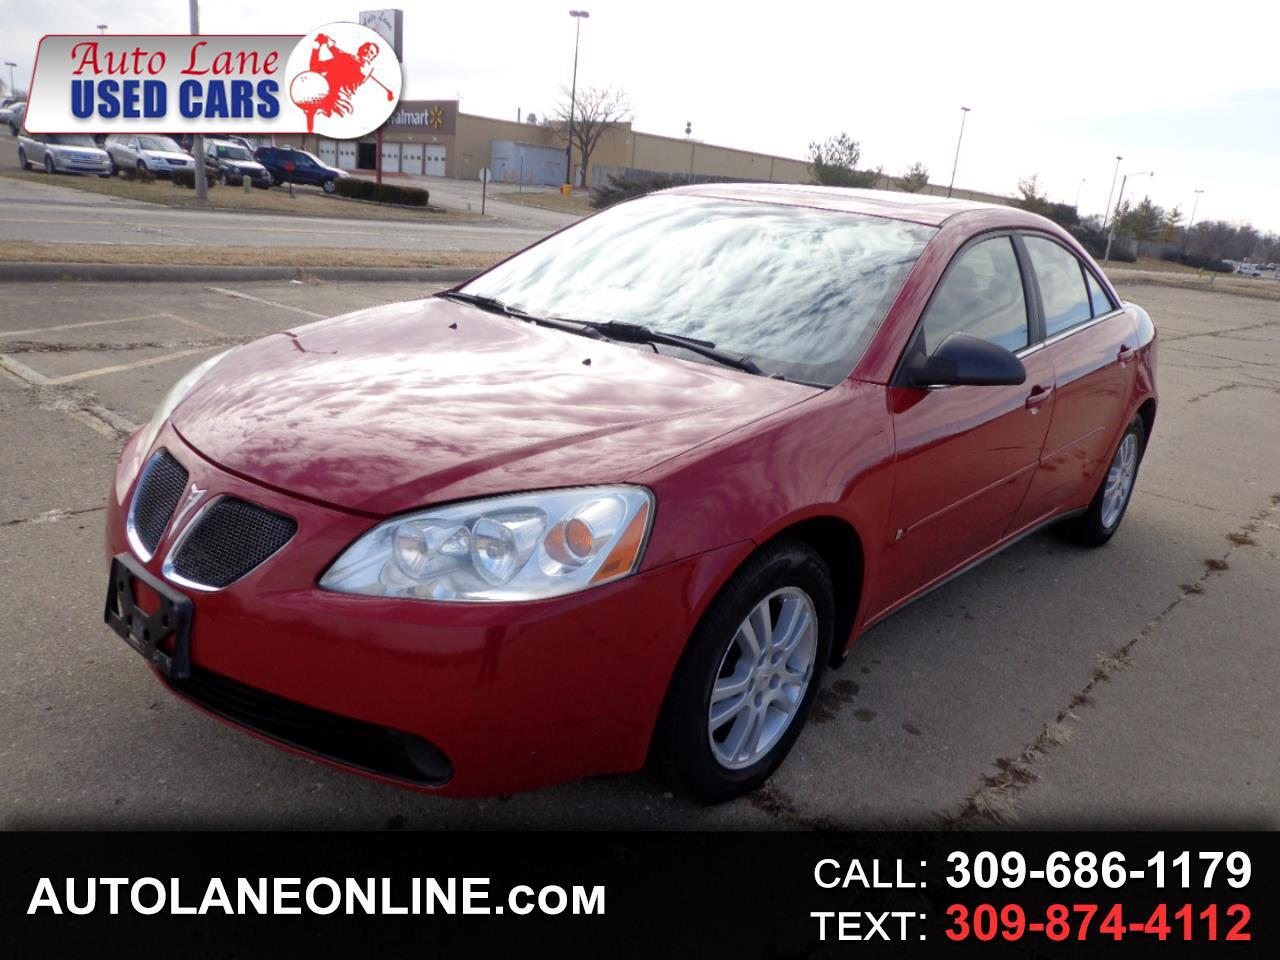 Auto Lane Peoria Il >> Buy Here Pay Here 2006 Pontiac G6 4dr Sdn 6 Cyl For Sale In